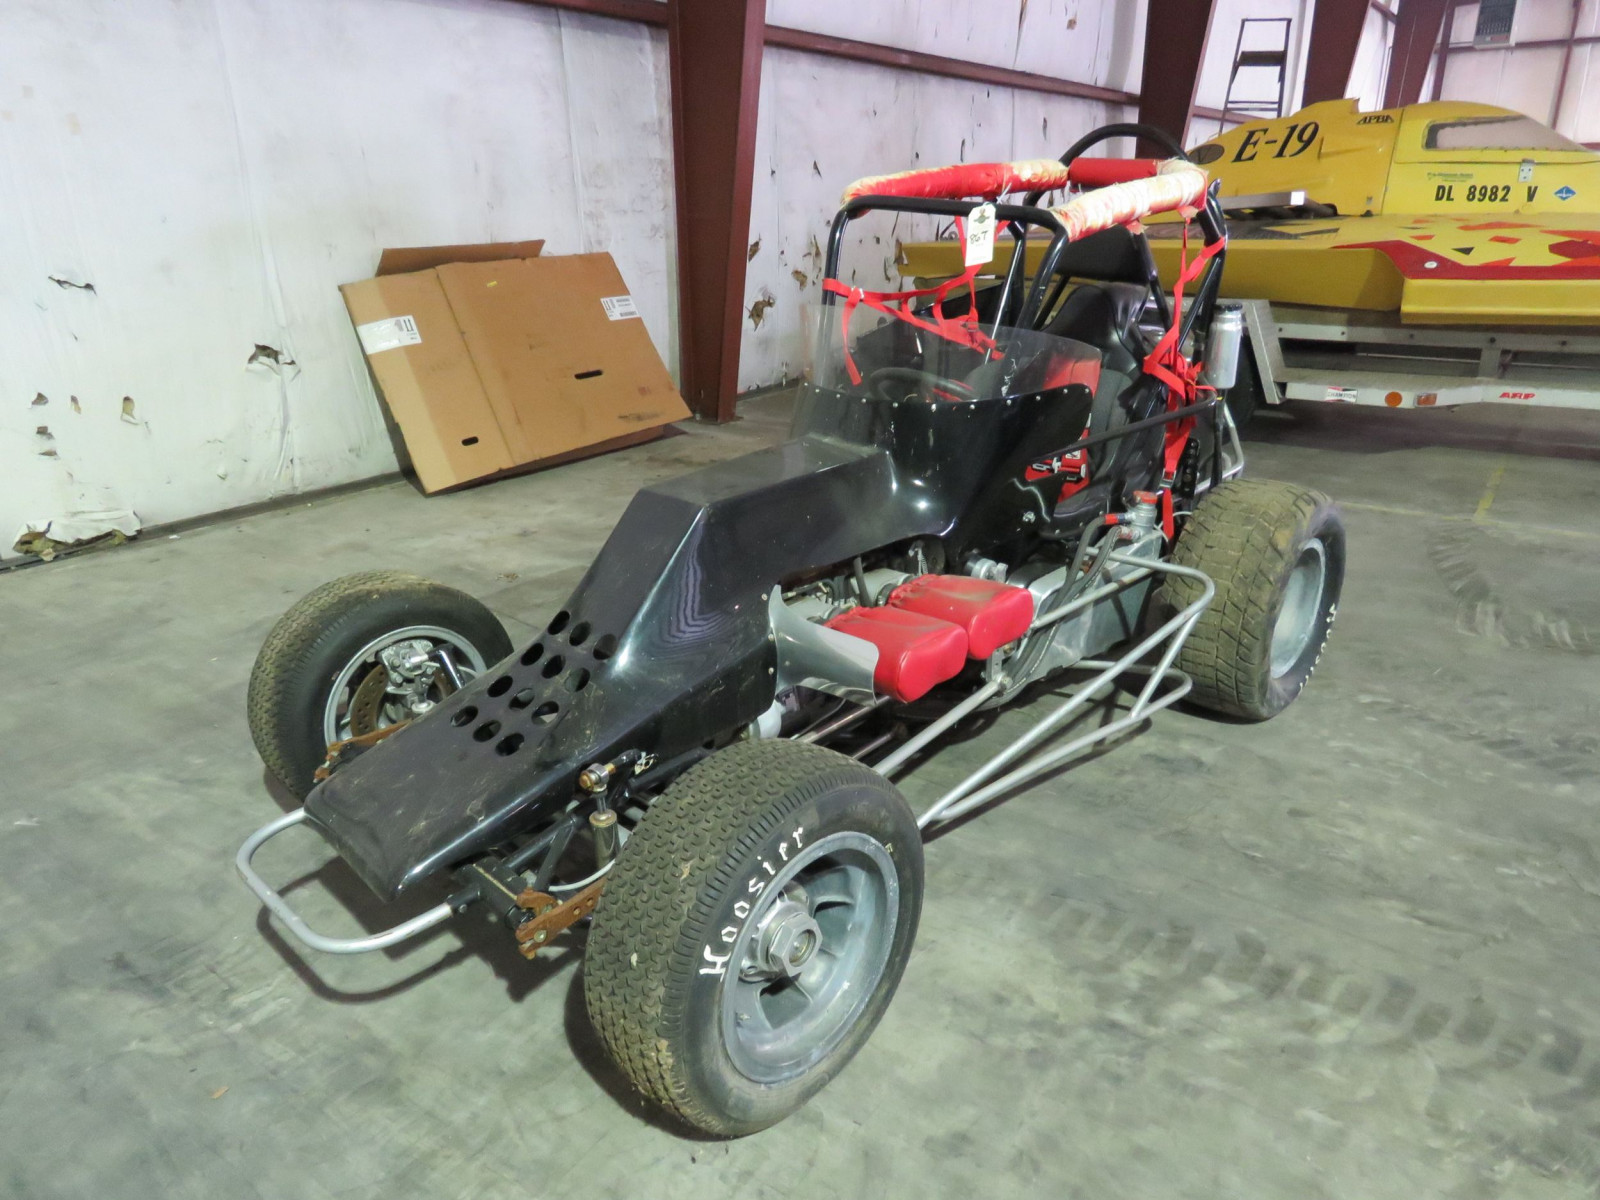 1970 Edmunds Sesco Midget Race Cart - Image 1